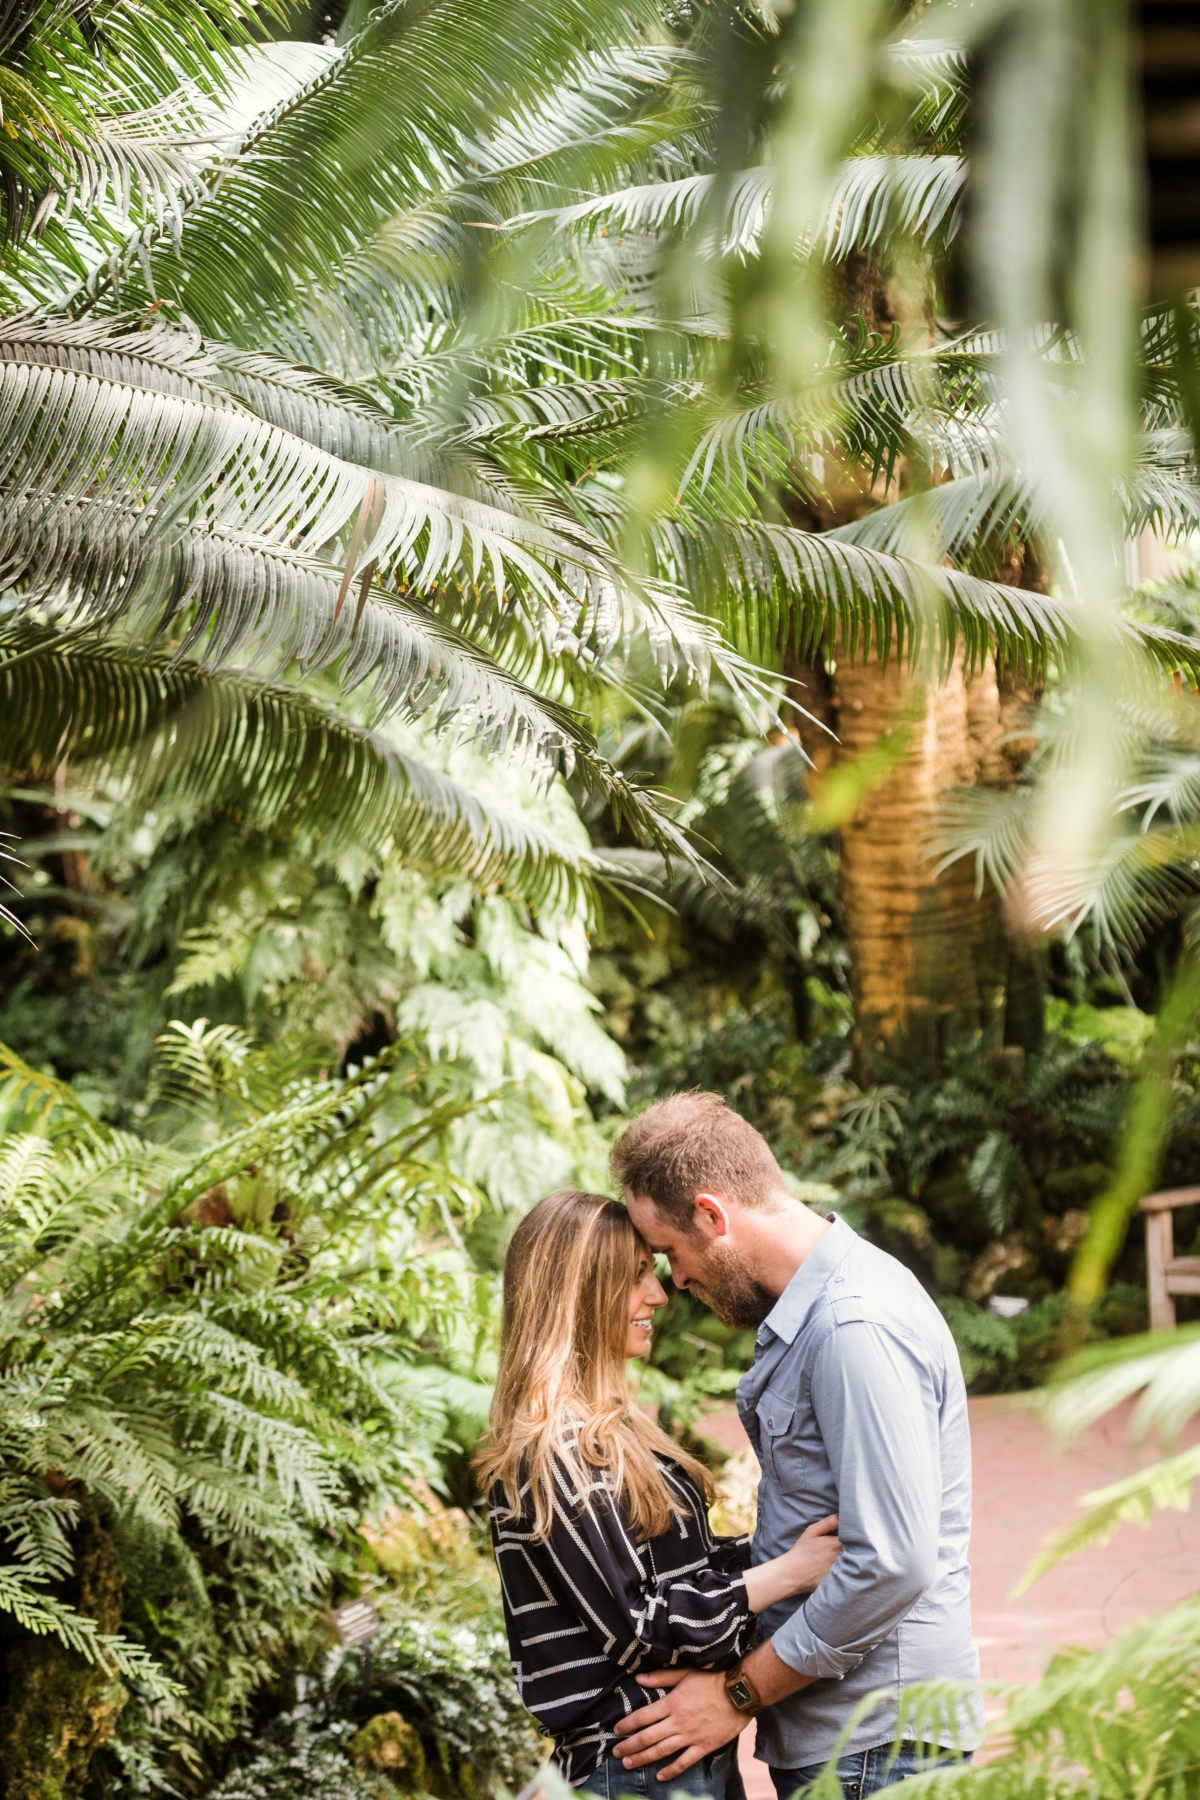 Lincoln Park Conservatory Engagement Session 27